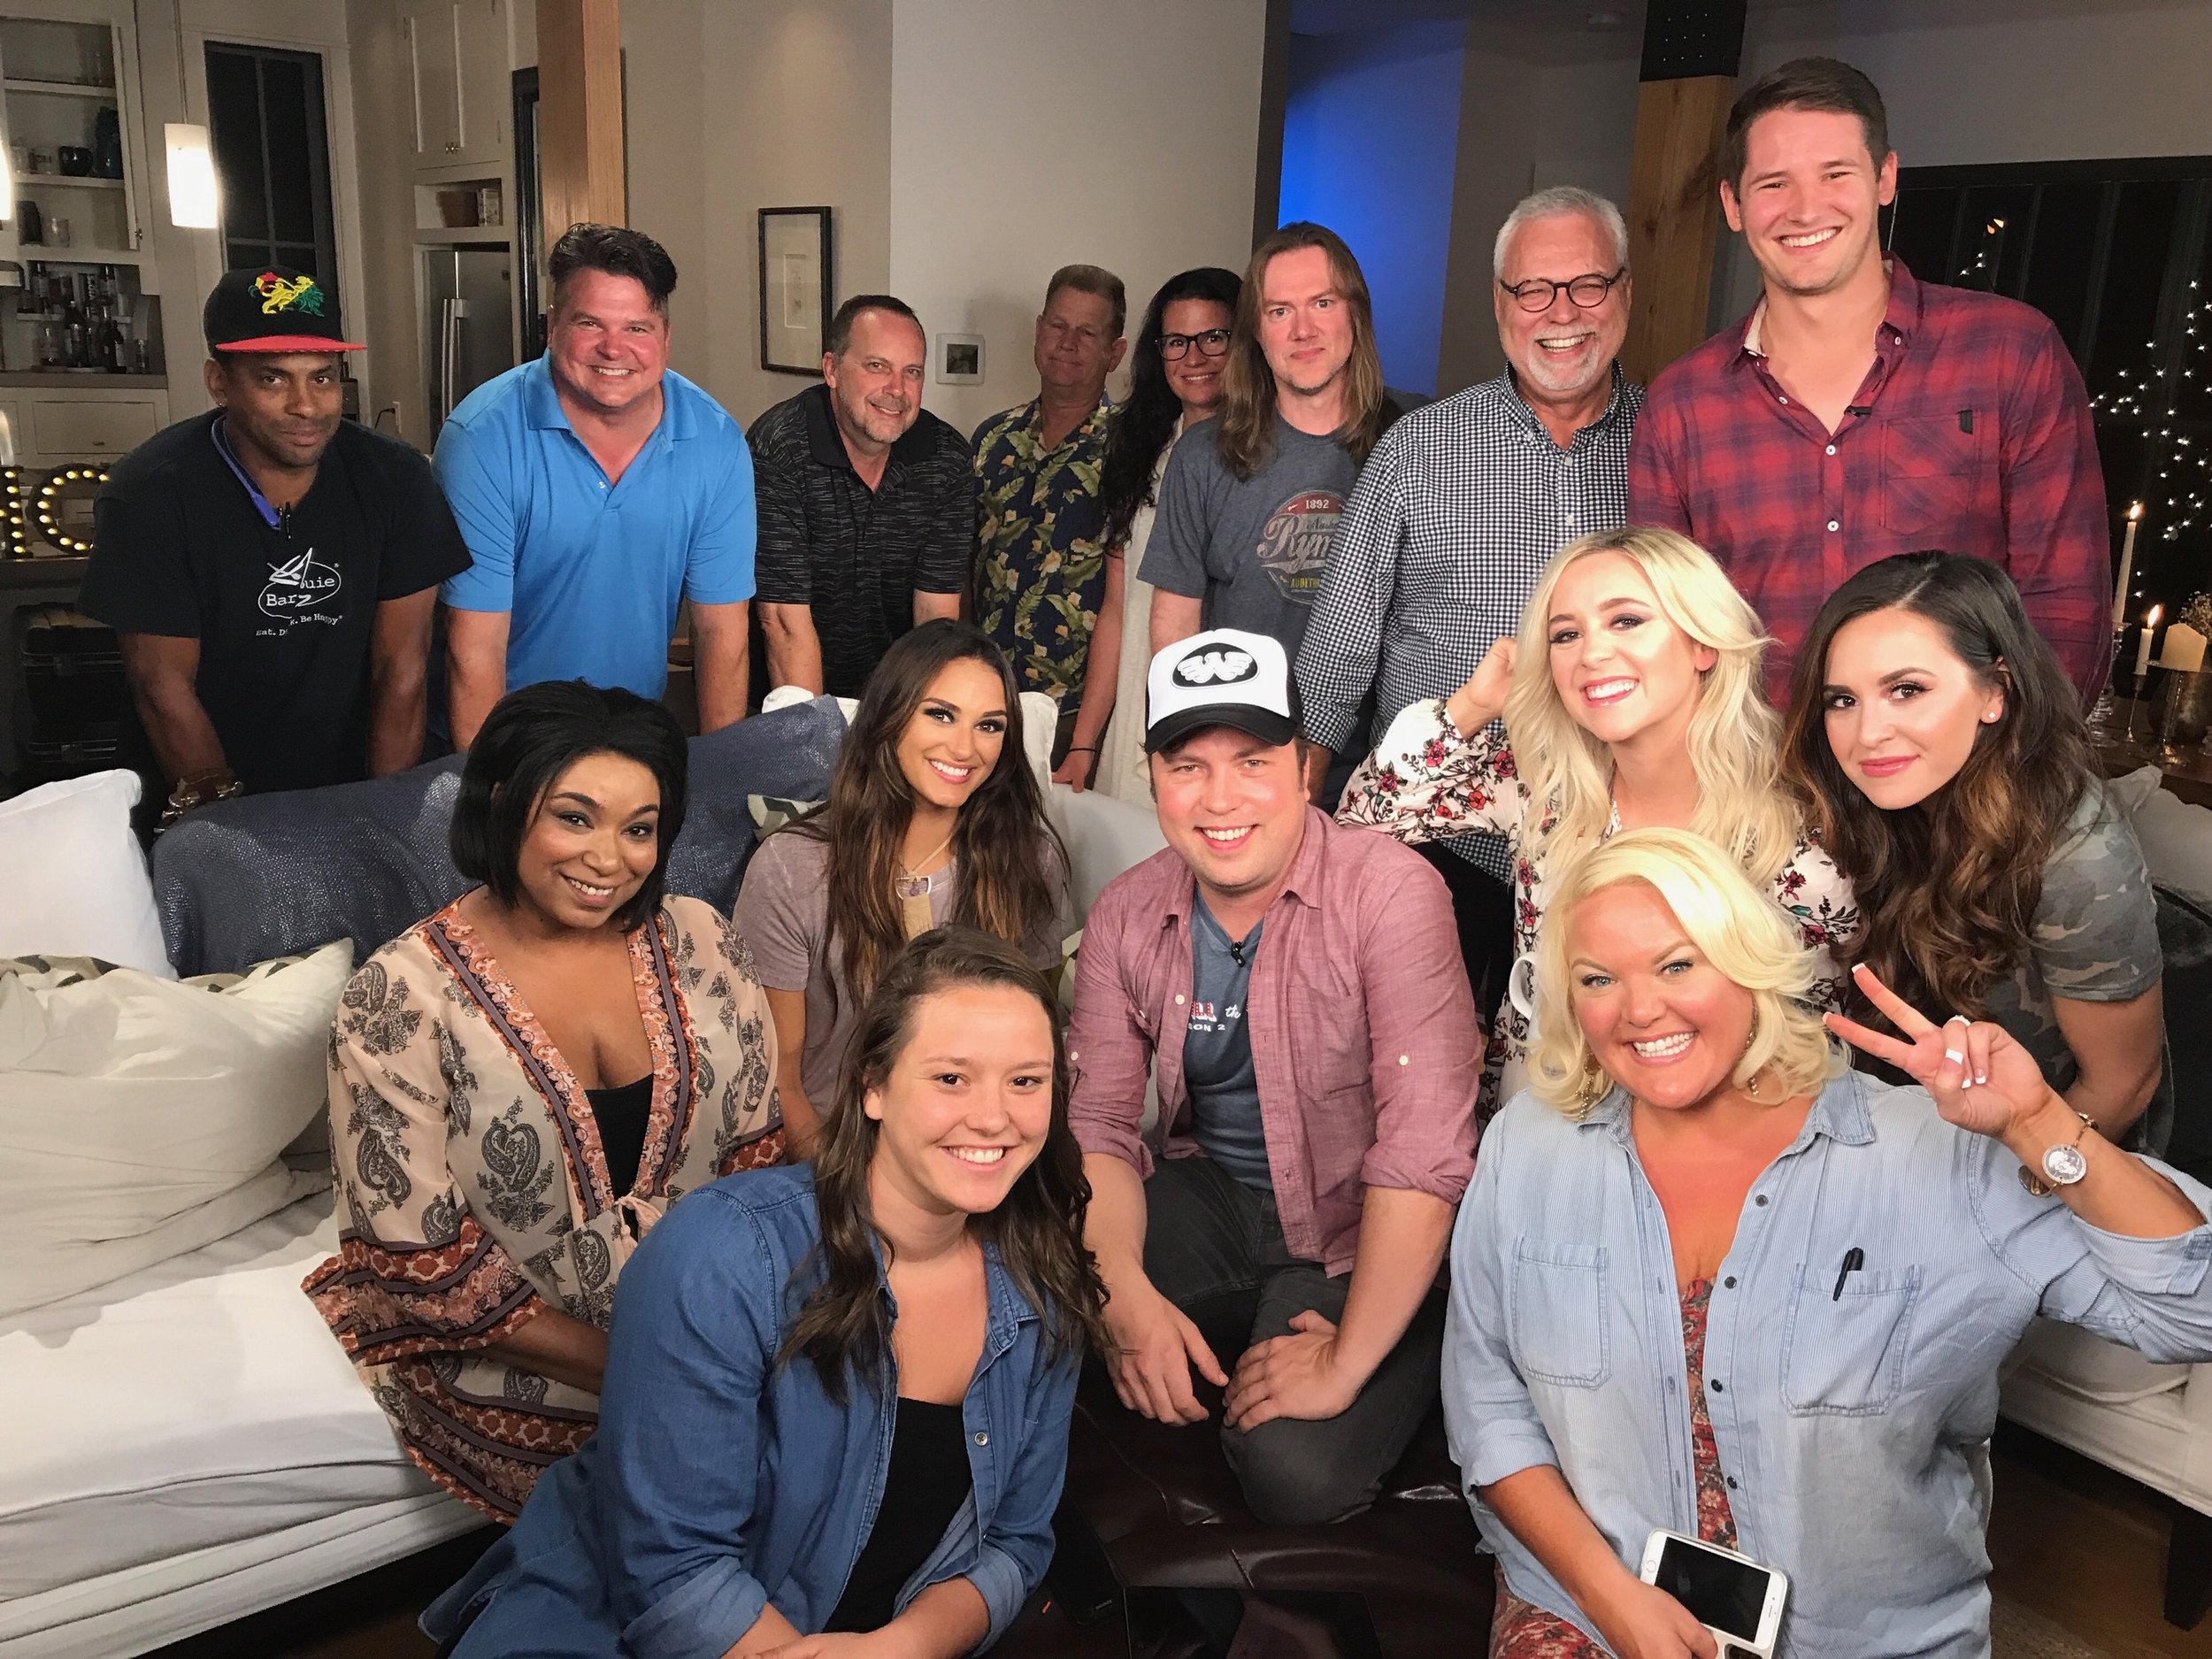 JANUARY - JUNE 2017 - HEATHER CONTRIBUTED TO 'NASHCHAT,' THE OFFICIAL AFTER-SHOW OF NASHVILLE ON CMT AS AN AP.